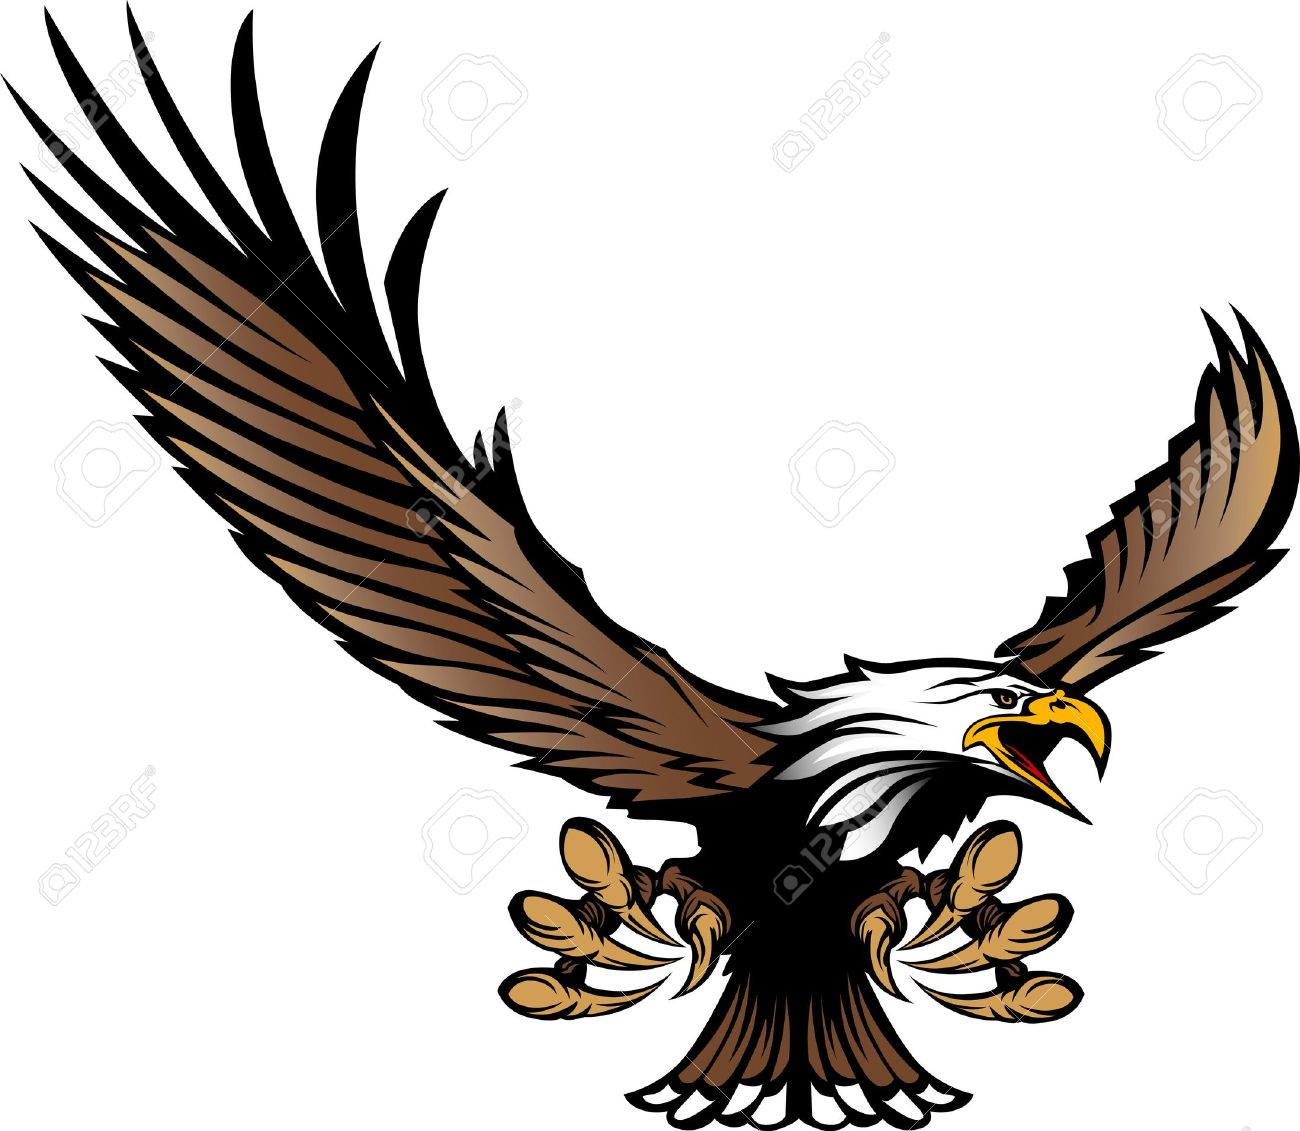 Graphic Mascot Image of a  Eagle Wings Logo Design